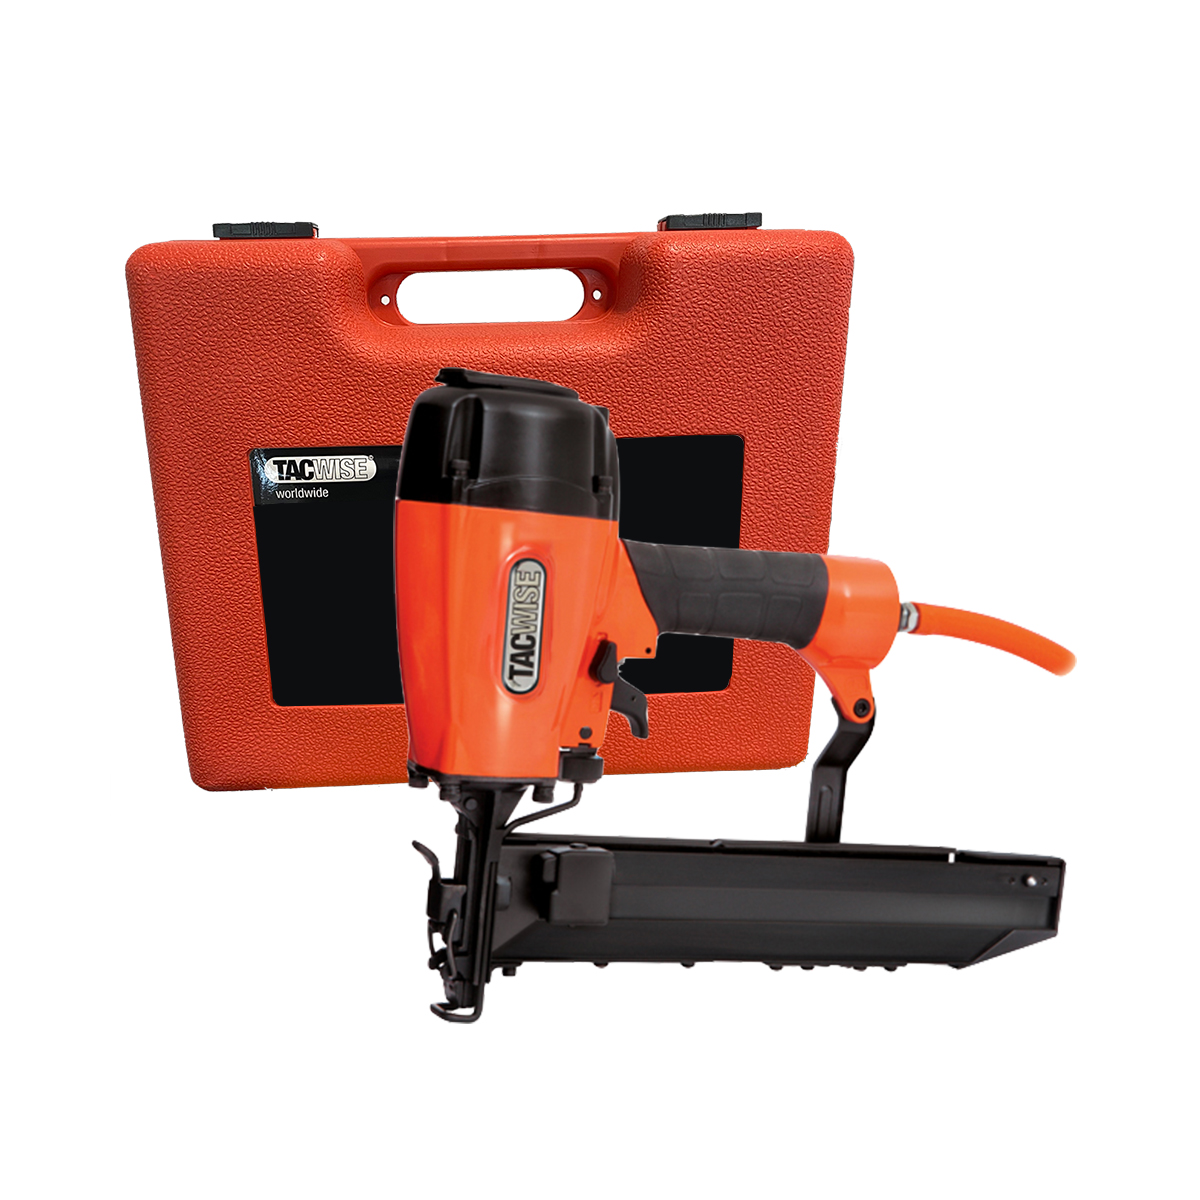 Tacwise G1450V 50mm Heavy Duty Framing Stapler with Carry Case